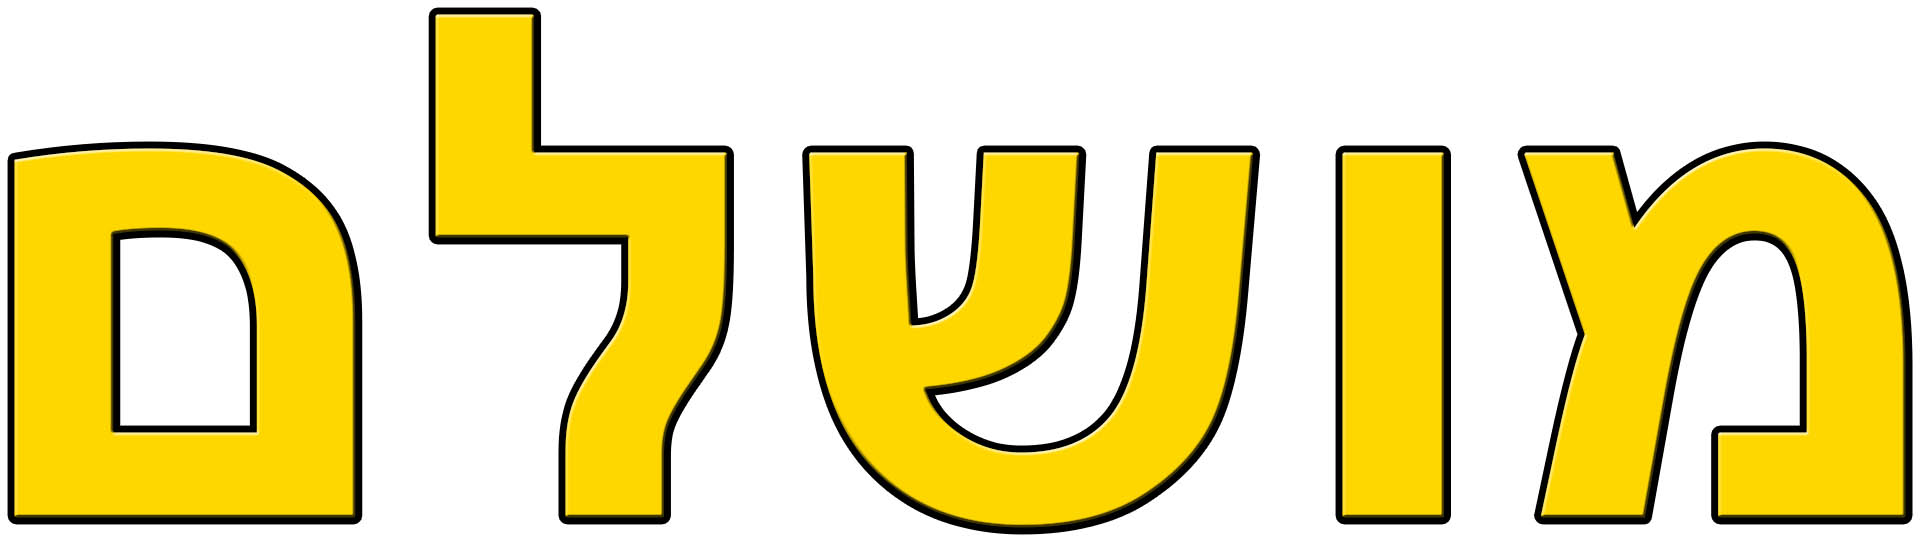 PERFECT in Hebrew